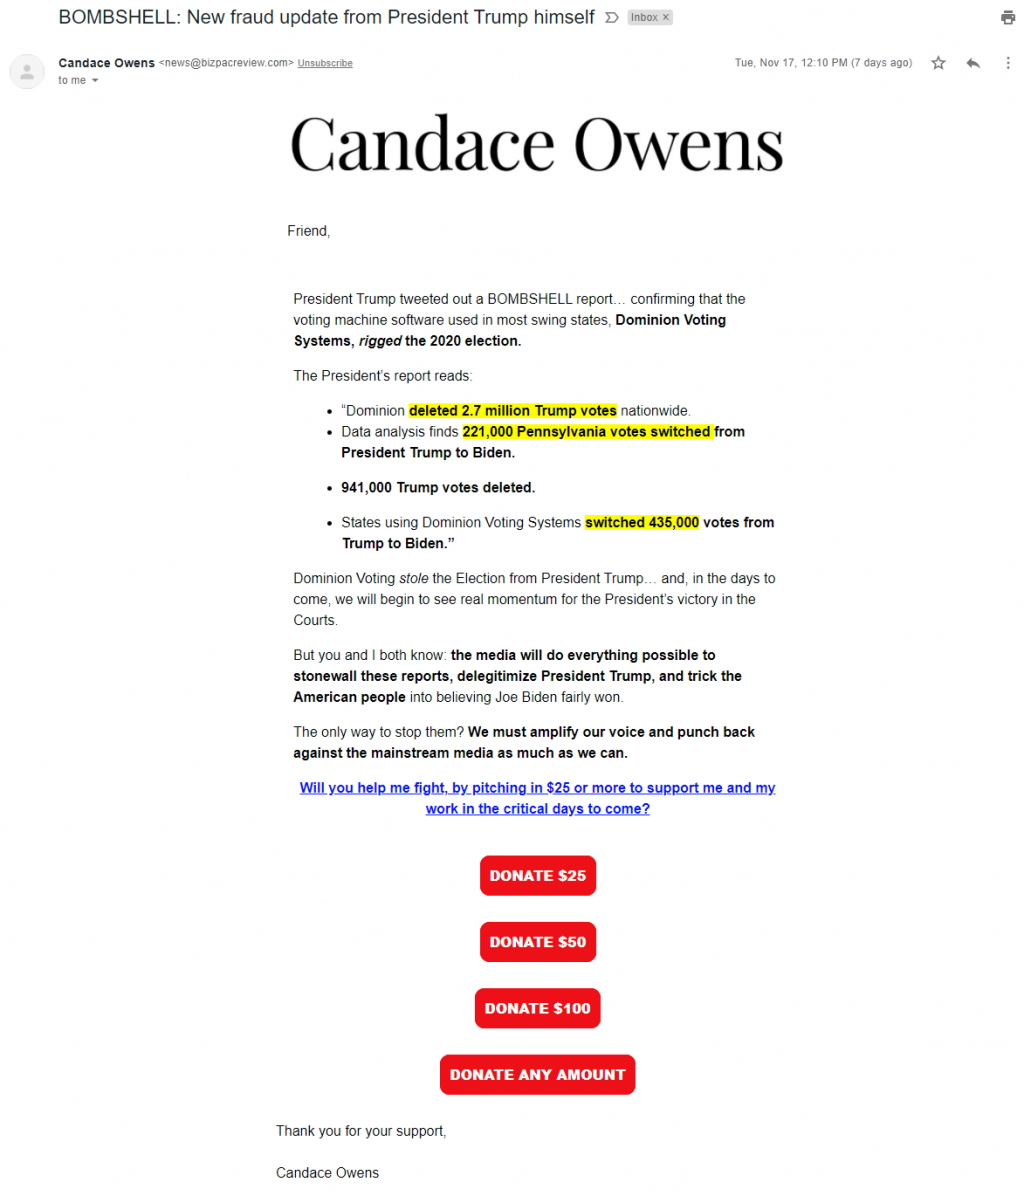 An image of Candace Owens' election grifters email